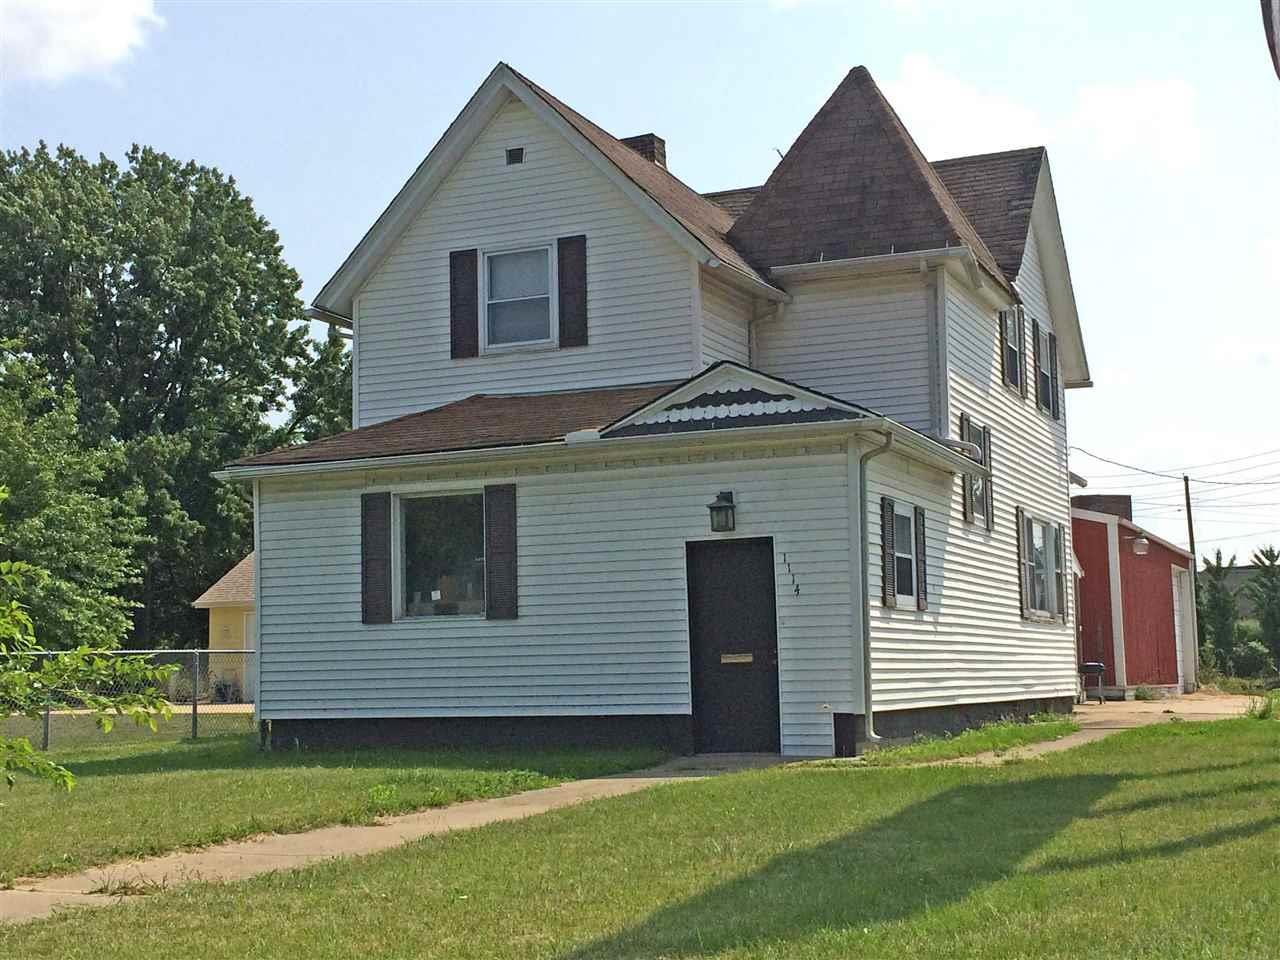 1114 Lincolnway East, South Bend, IN 46601